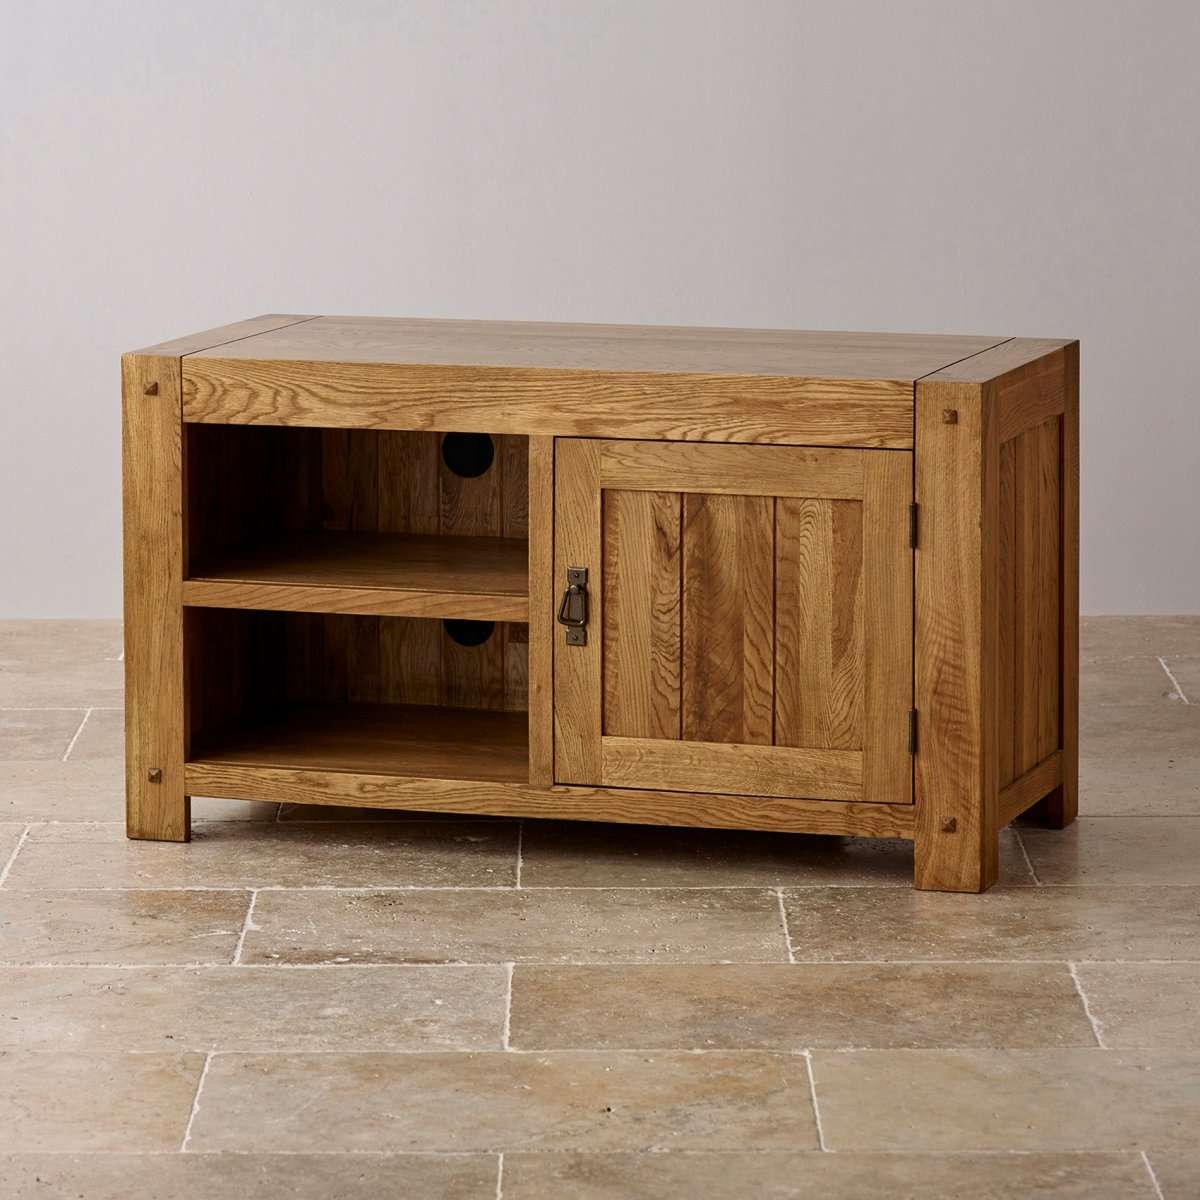 Bare Wood Tv Stand : Innovative Designs Oak Tv Console – Marku With Hard Wood Tv Stands (View 14 of 15)